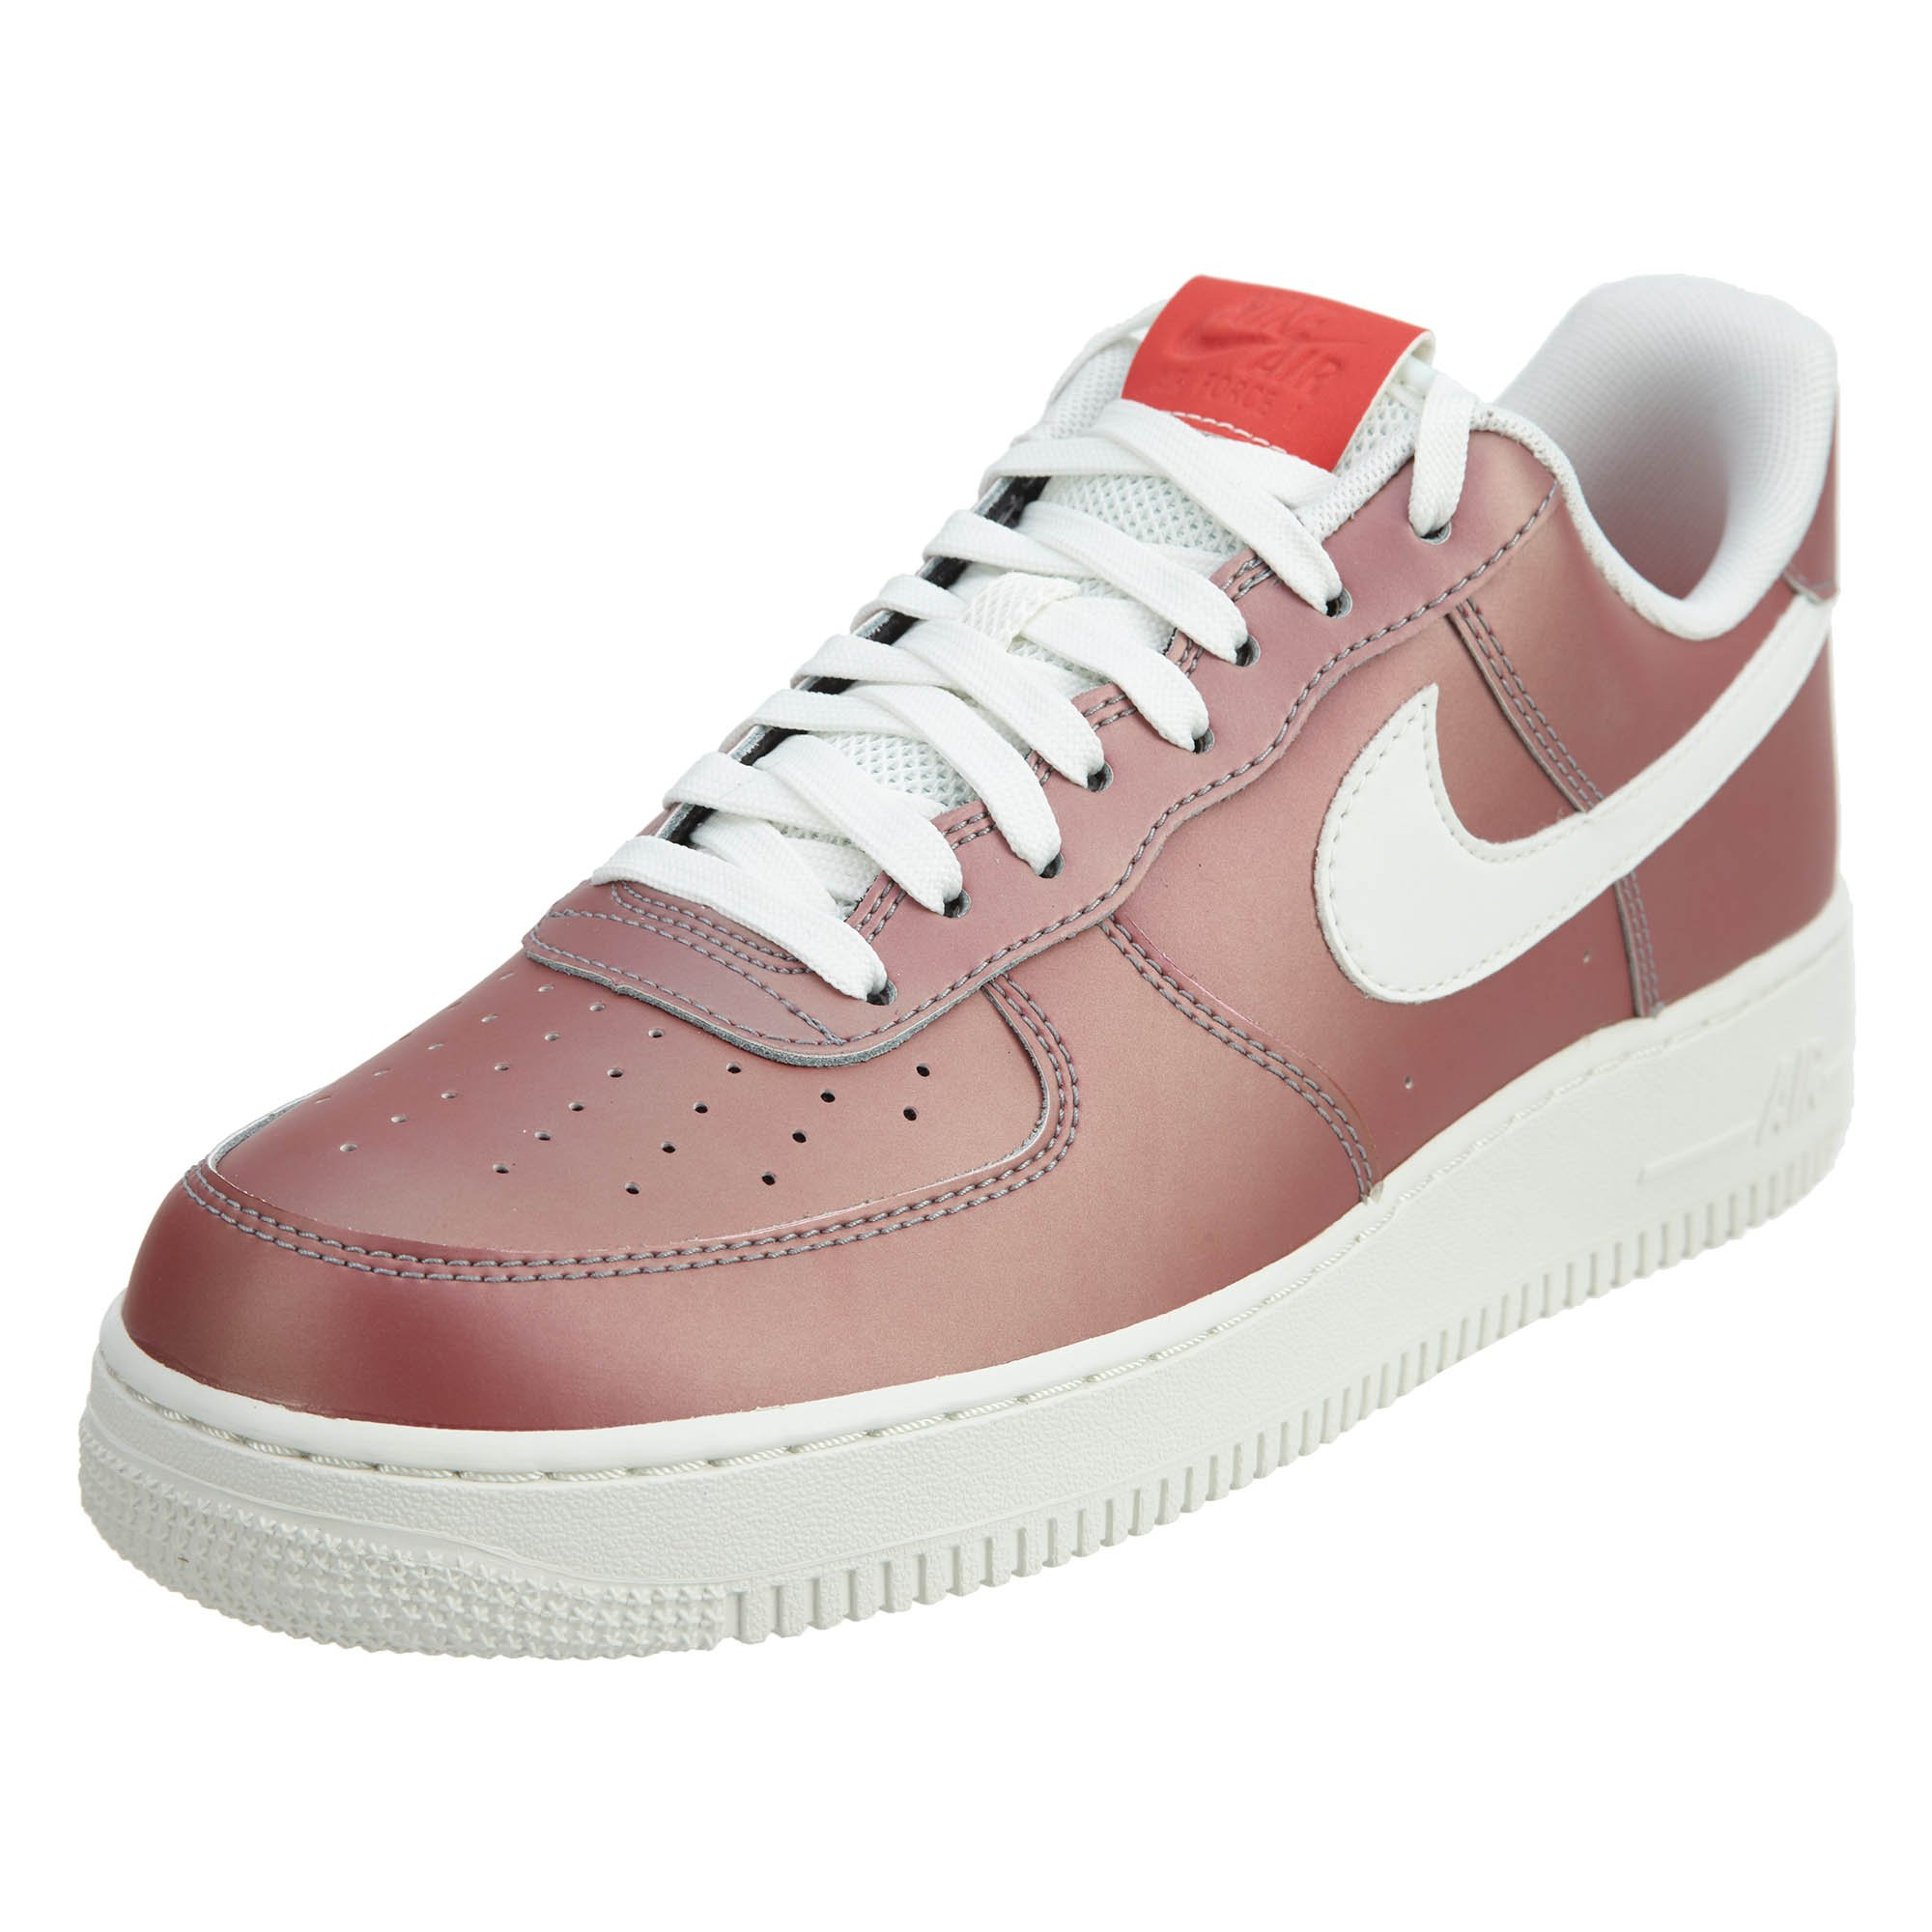 best website 58370 8be91 Galleon - Nike Air Force 1  07 Lv8 Mens Style   823511